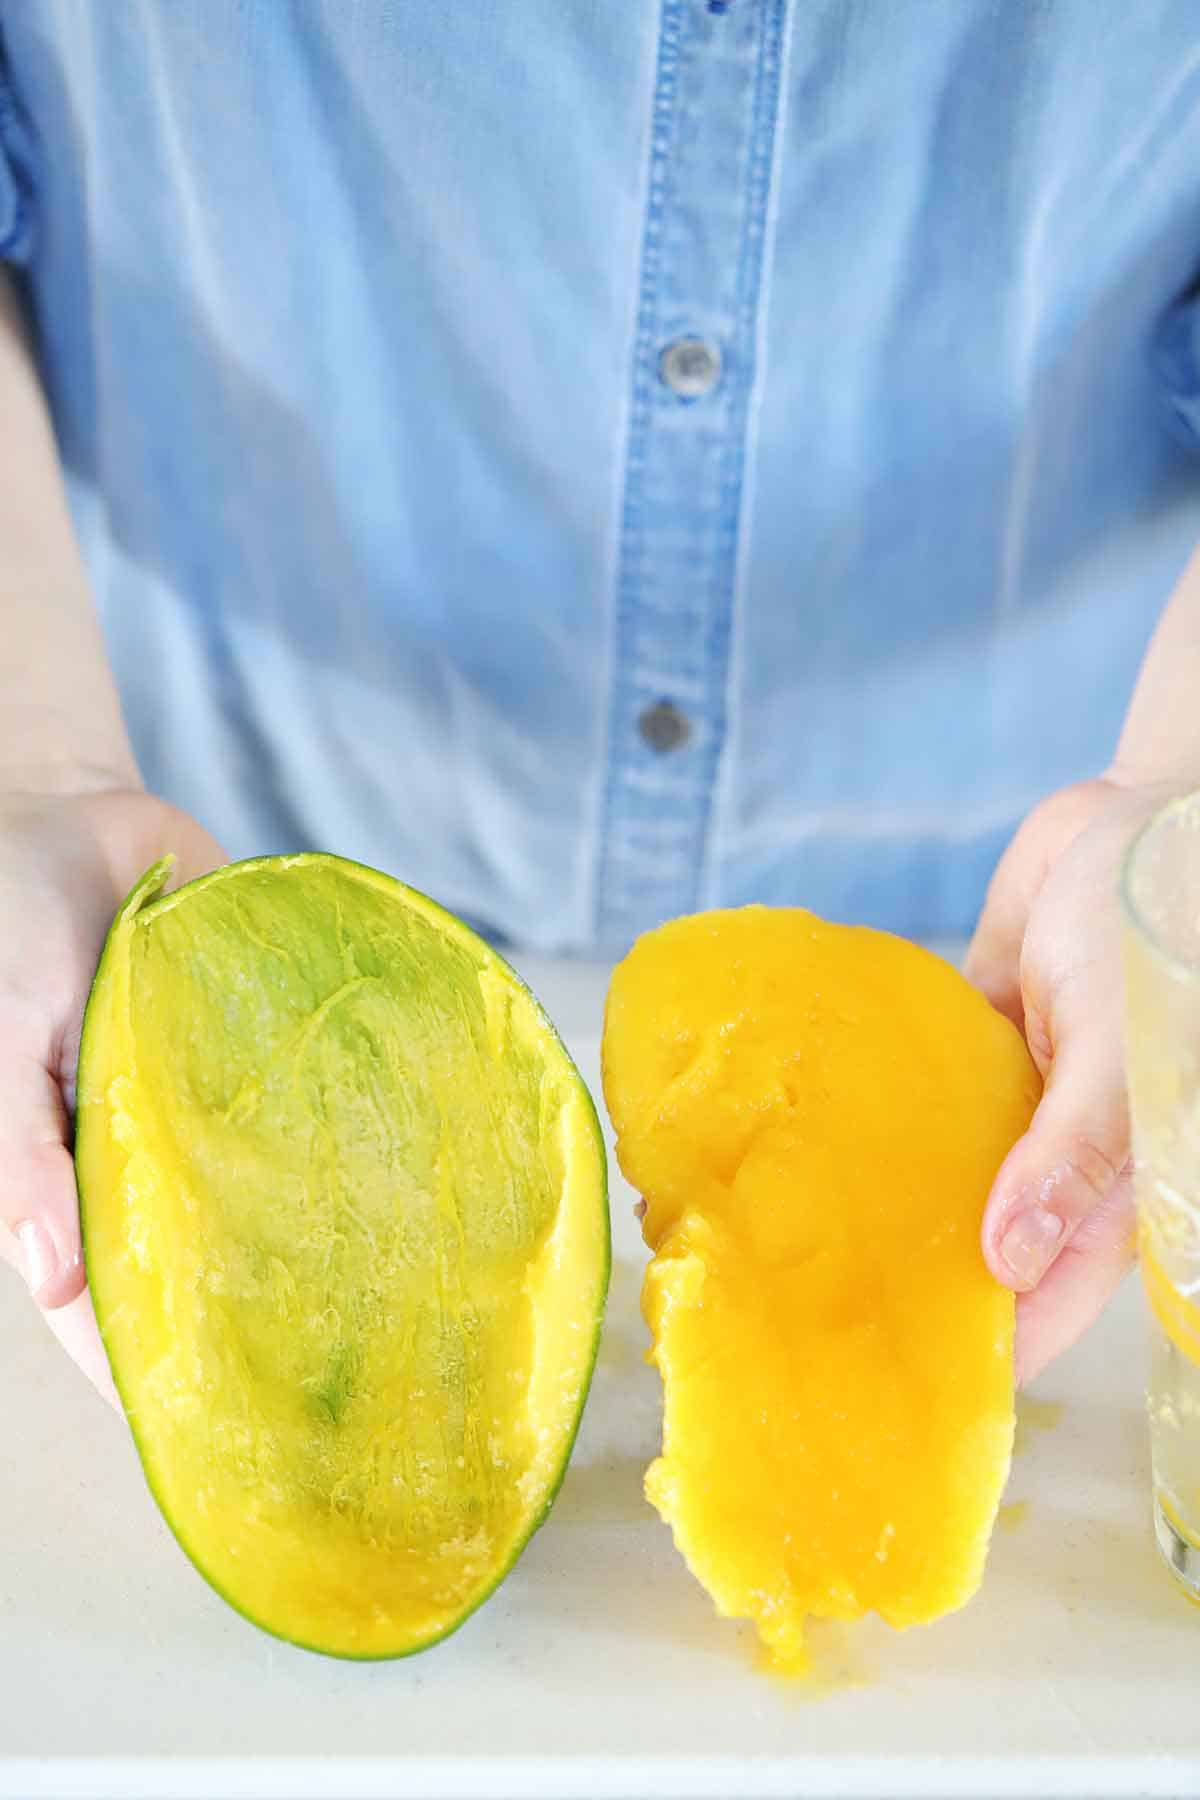 A mango separated from its peel.